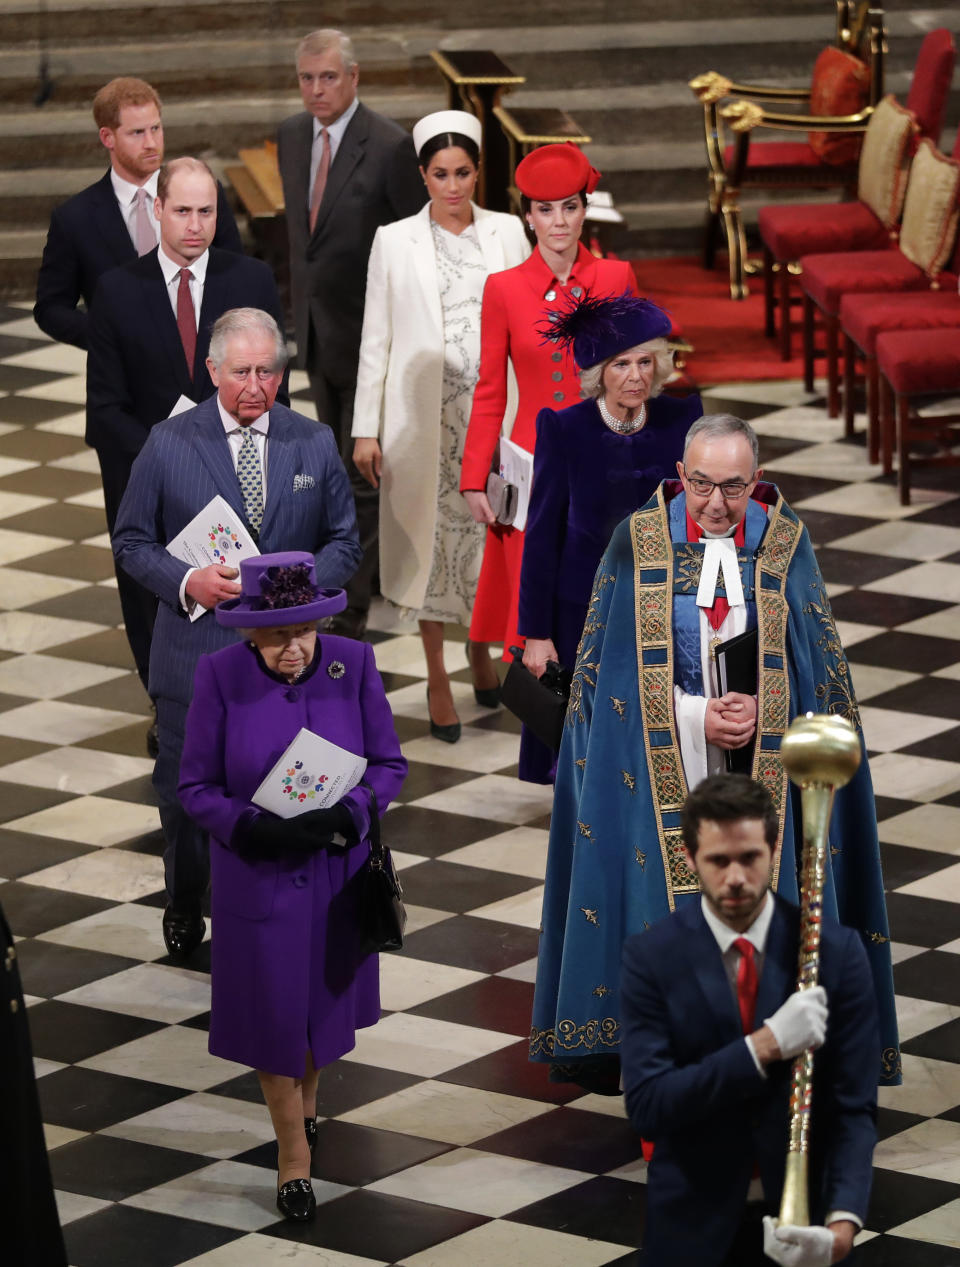 File photo dated 11/03/19 of the Royal family leaving after the Commonwealth Service at Westminster Abbey, London. The Duke and Duchess of Sussex will not be part of the Queen's procession through Westminster Abbey at the start of the Commonwealth Service as they make their final official appearance as senior royals.